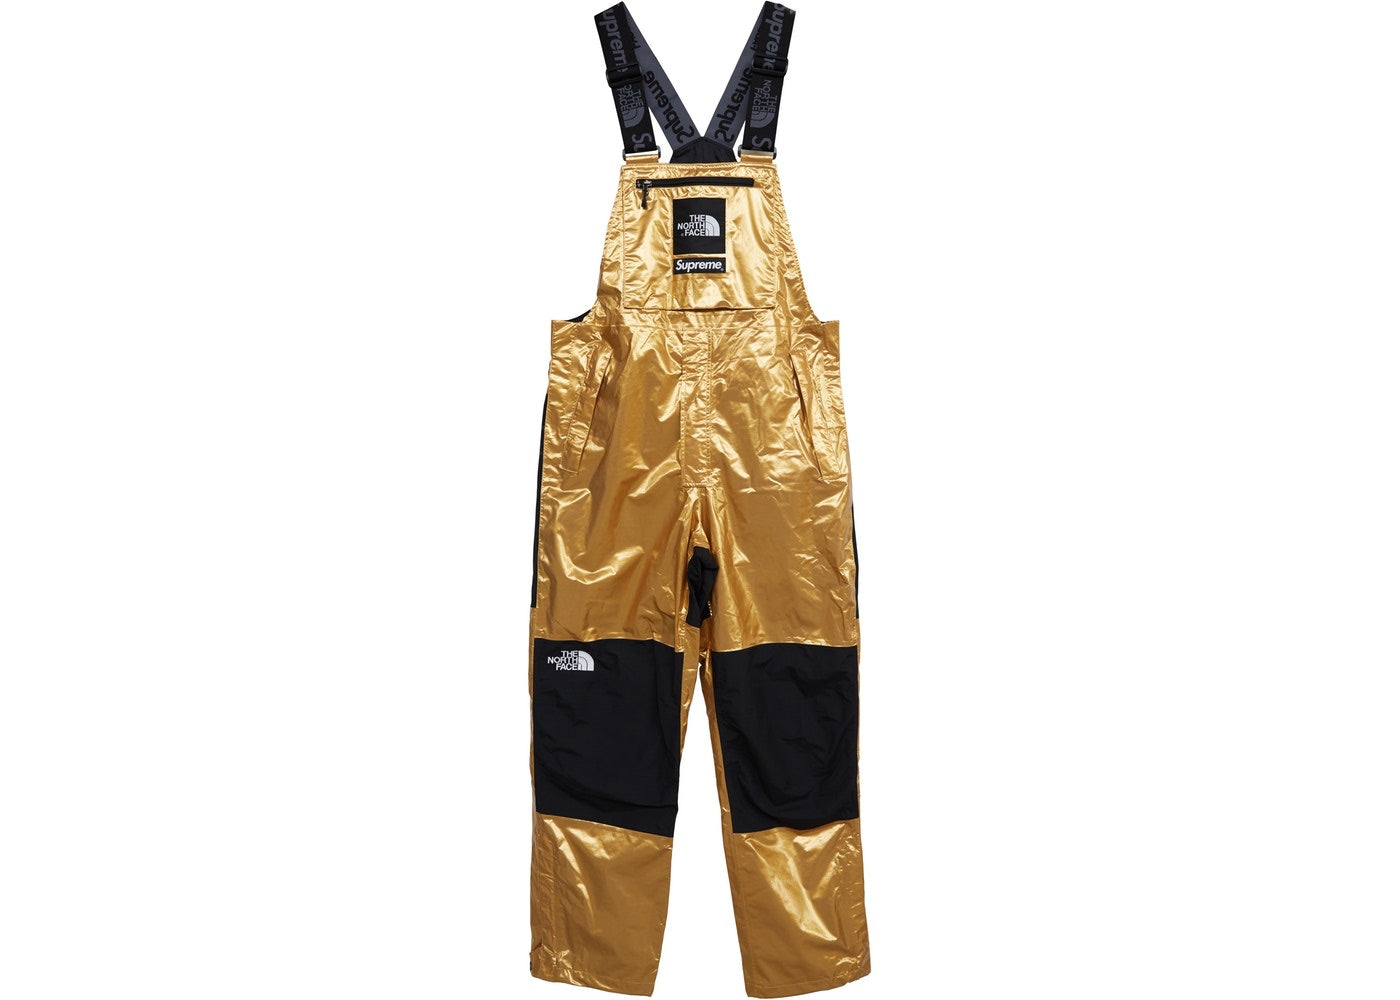 Supreme The North Face Metallic Mountain Bib Pants Gold Size Medium